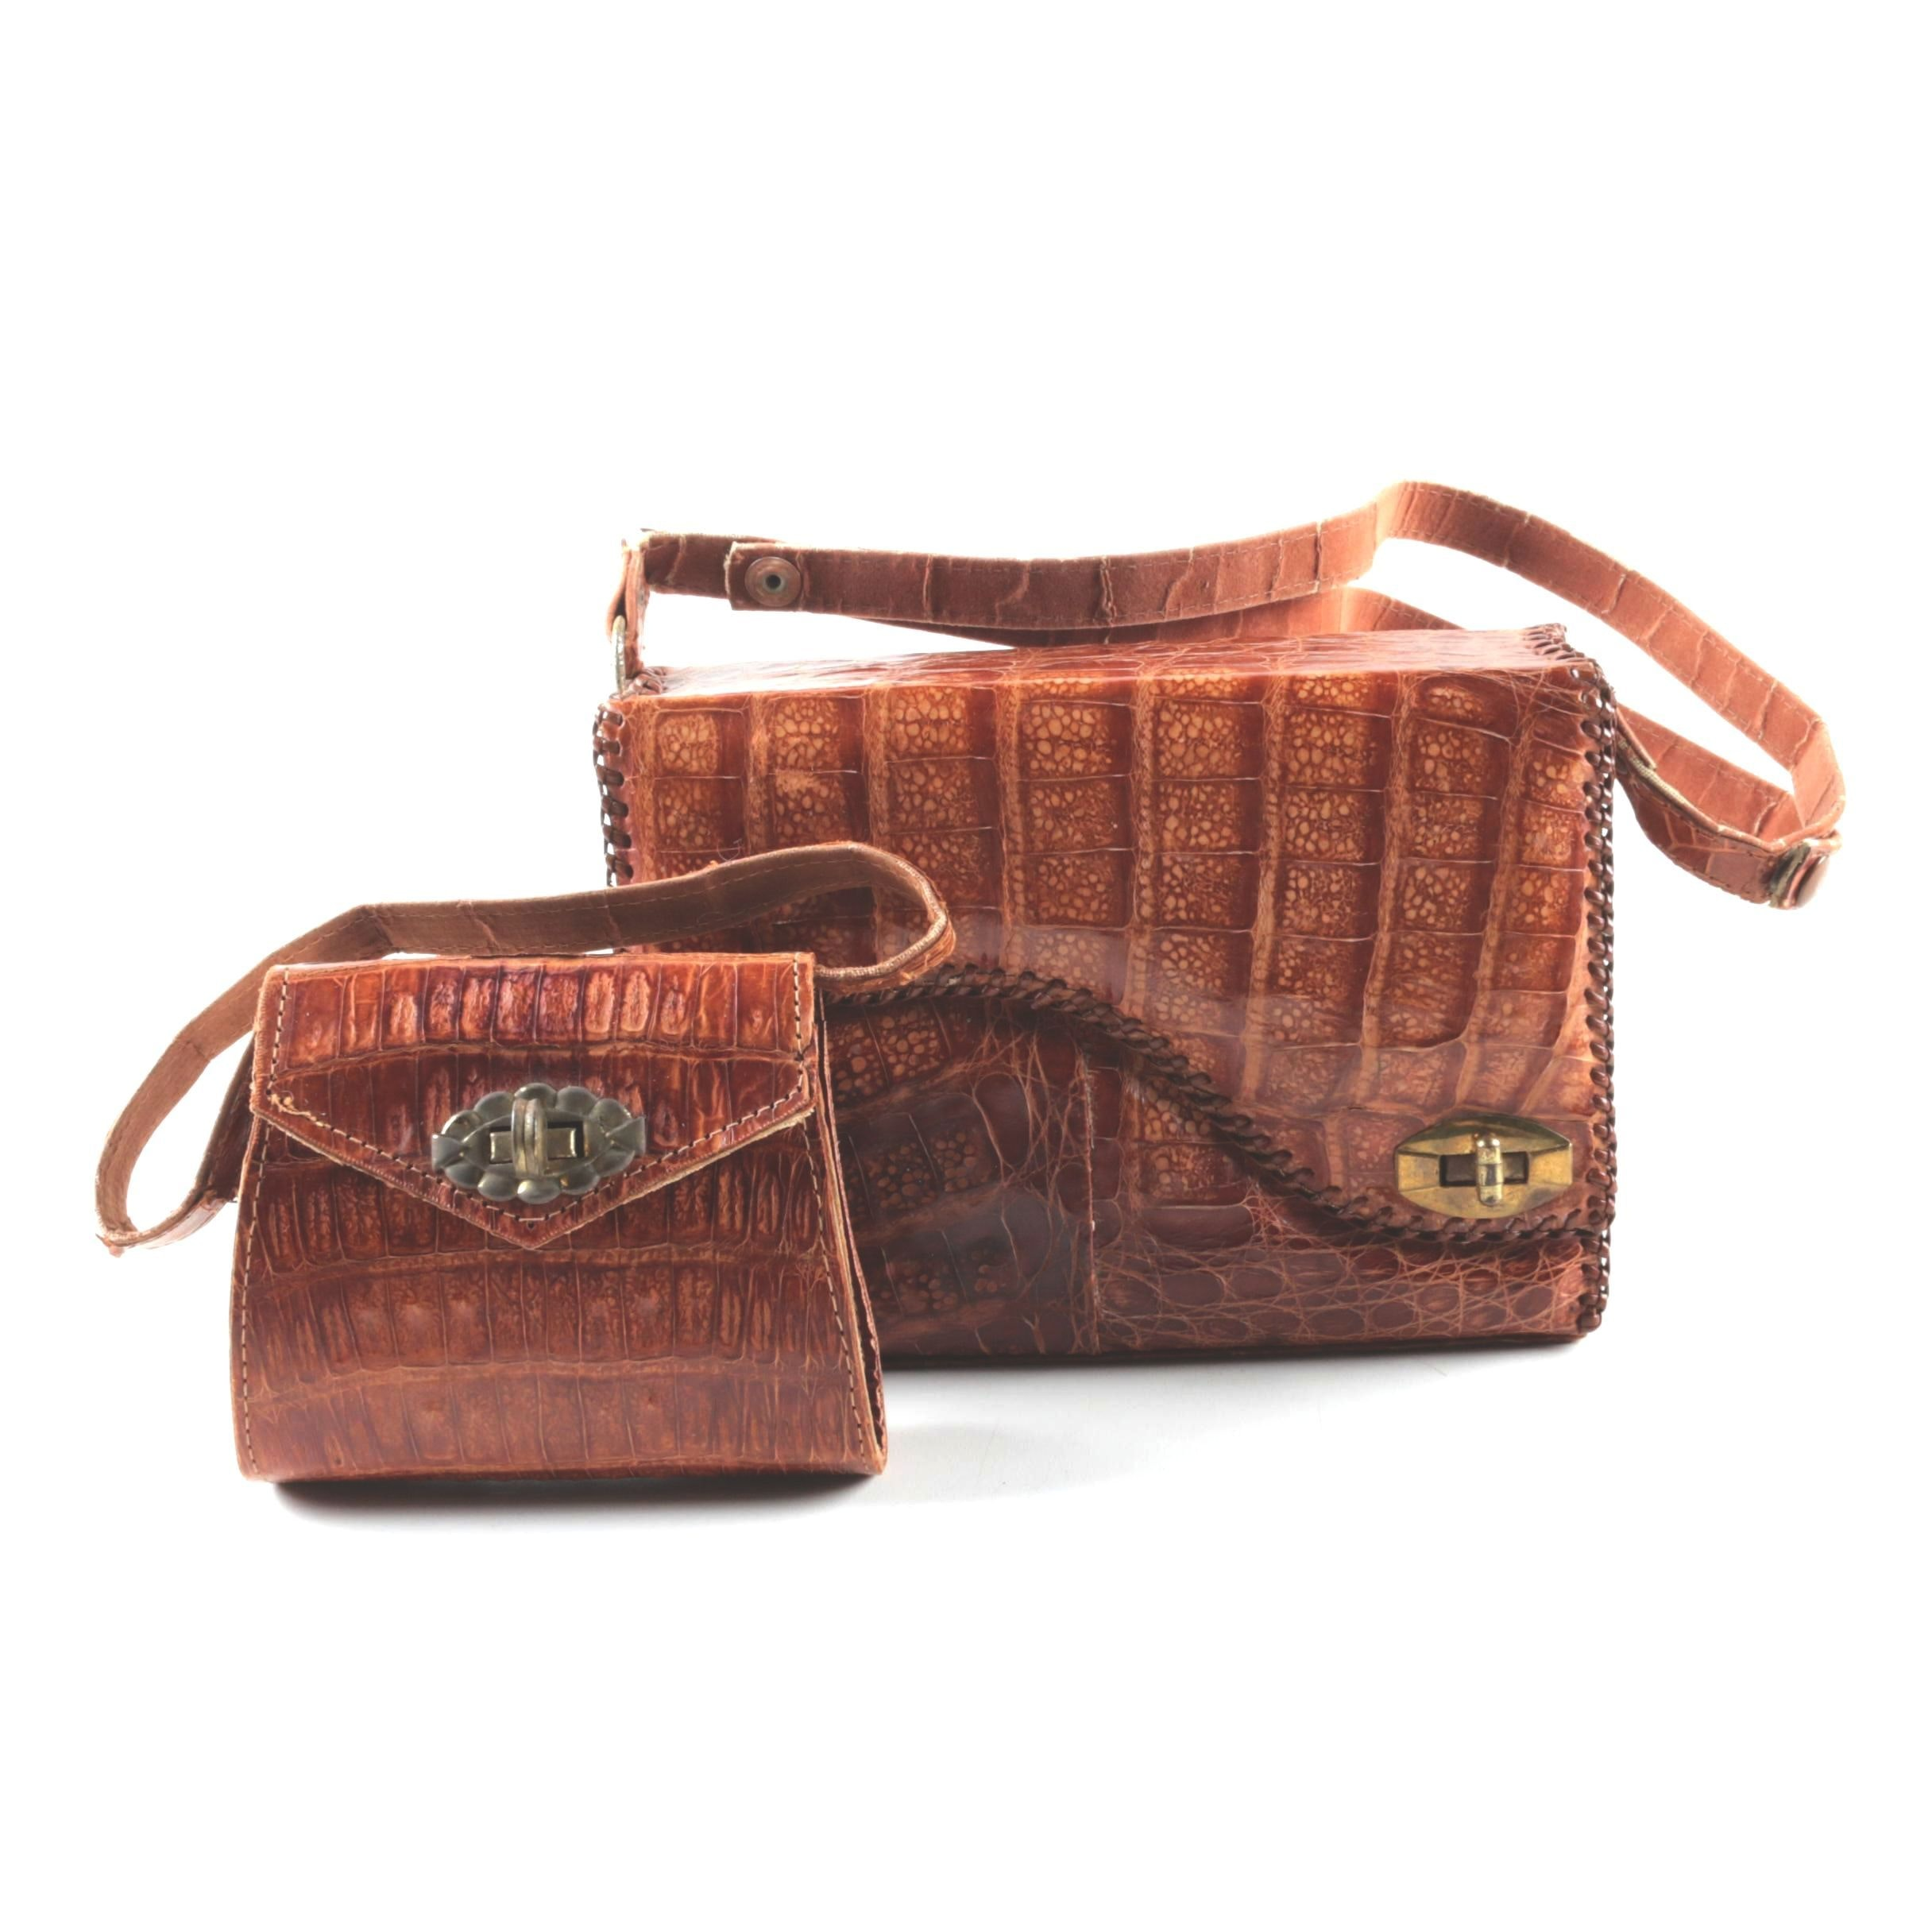 Vintage Alligator Skin Handbags